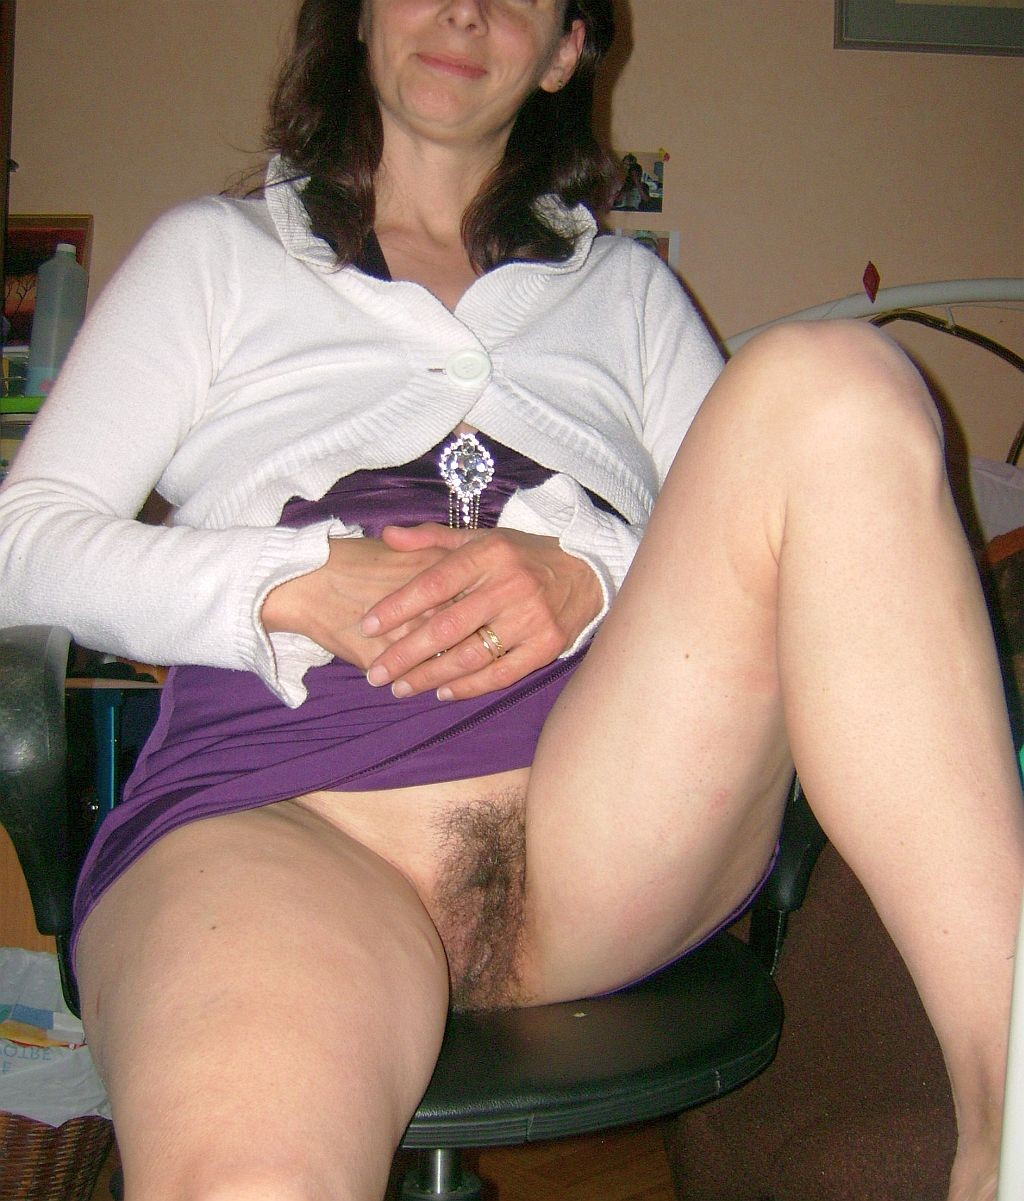 hairy-mom-upskirt-pussy-milf-black-women-with-glasses